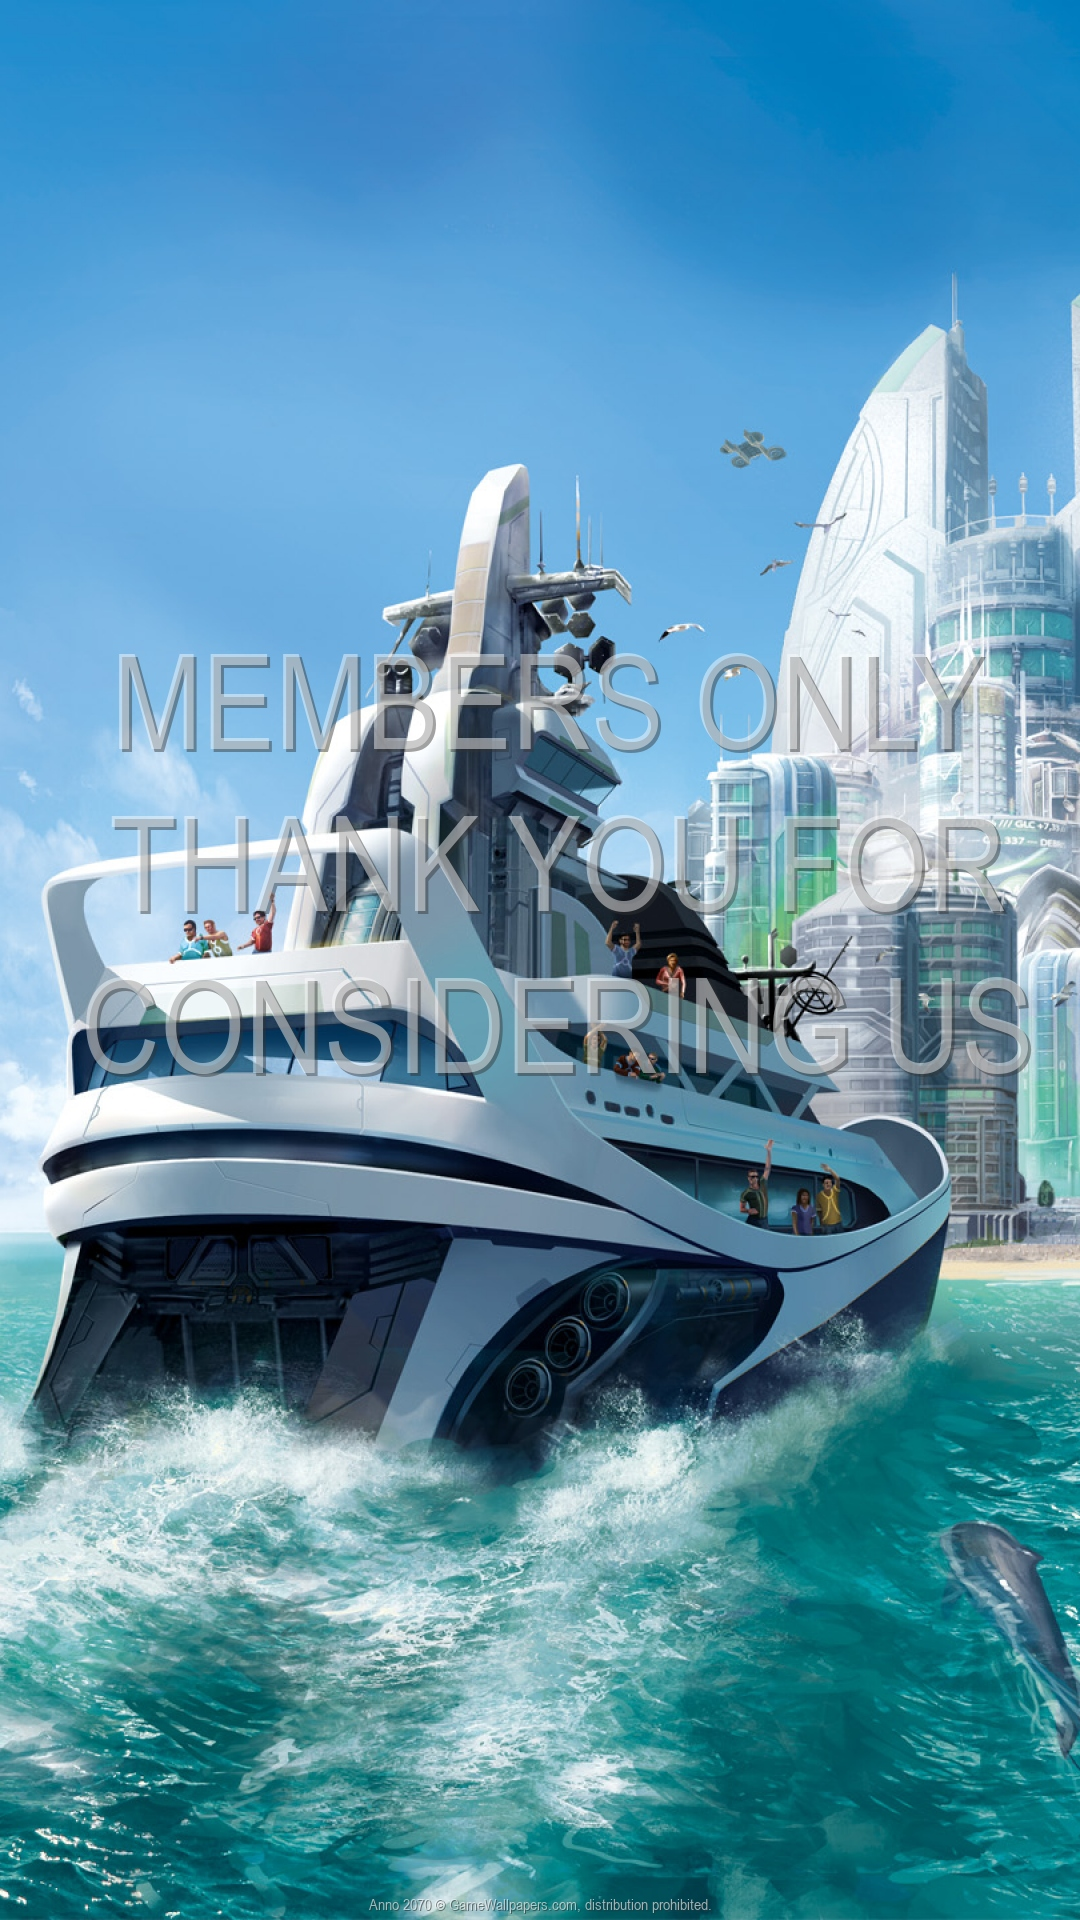 Anno 2070 1920x1080 Mobile wallpaper or background 02